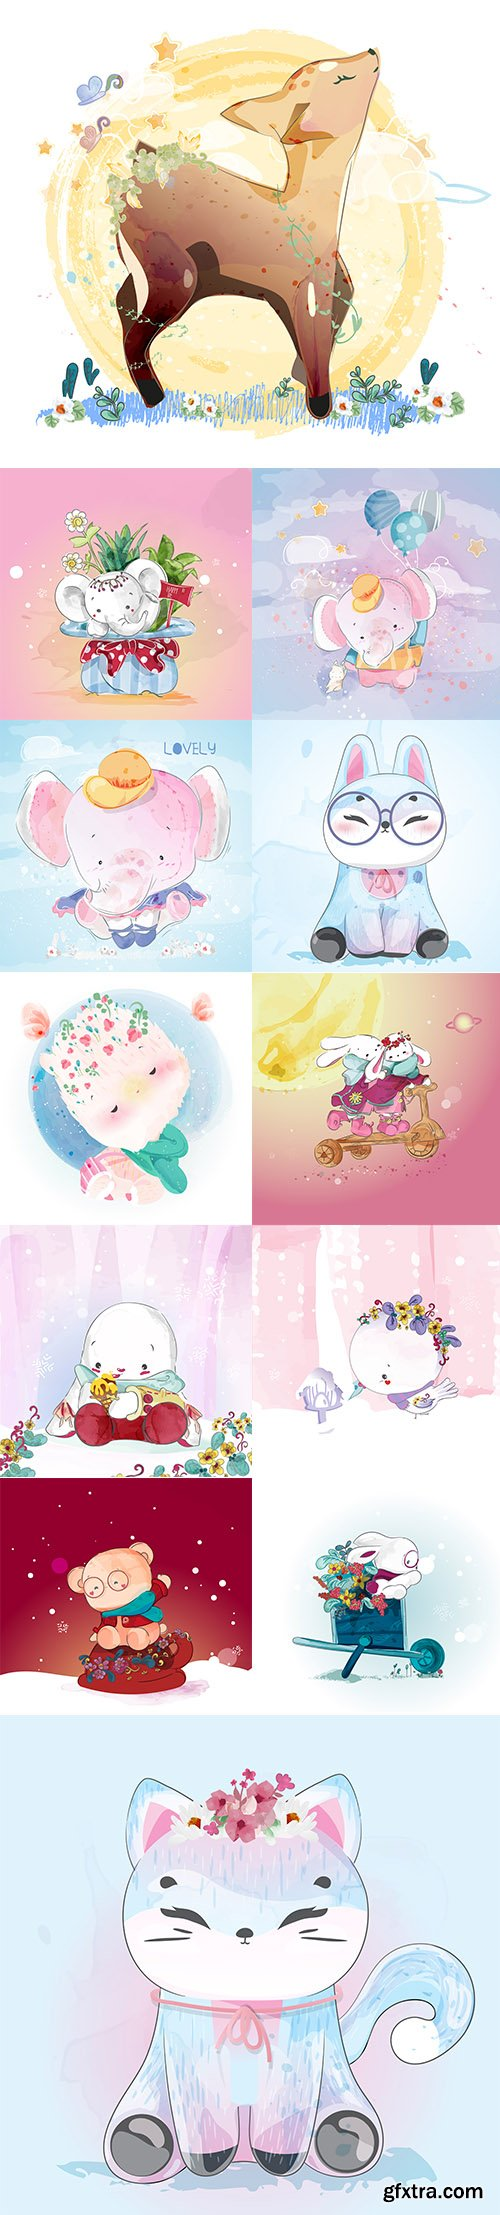 Hand Draw Lovely Cute Watercolor Animal Pack 2